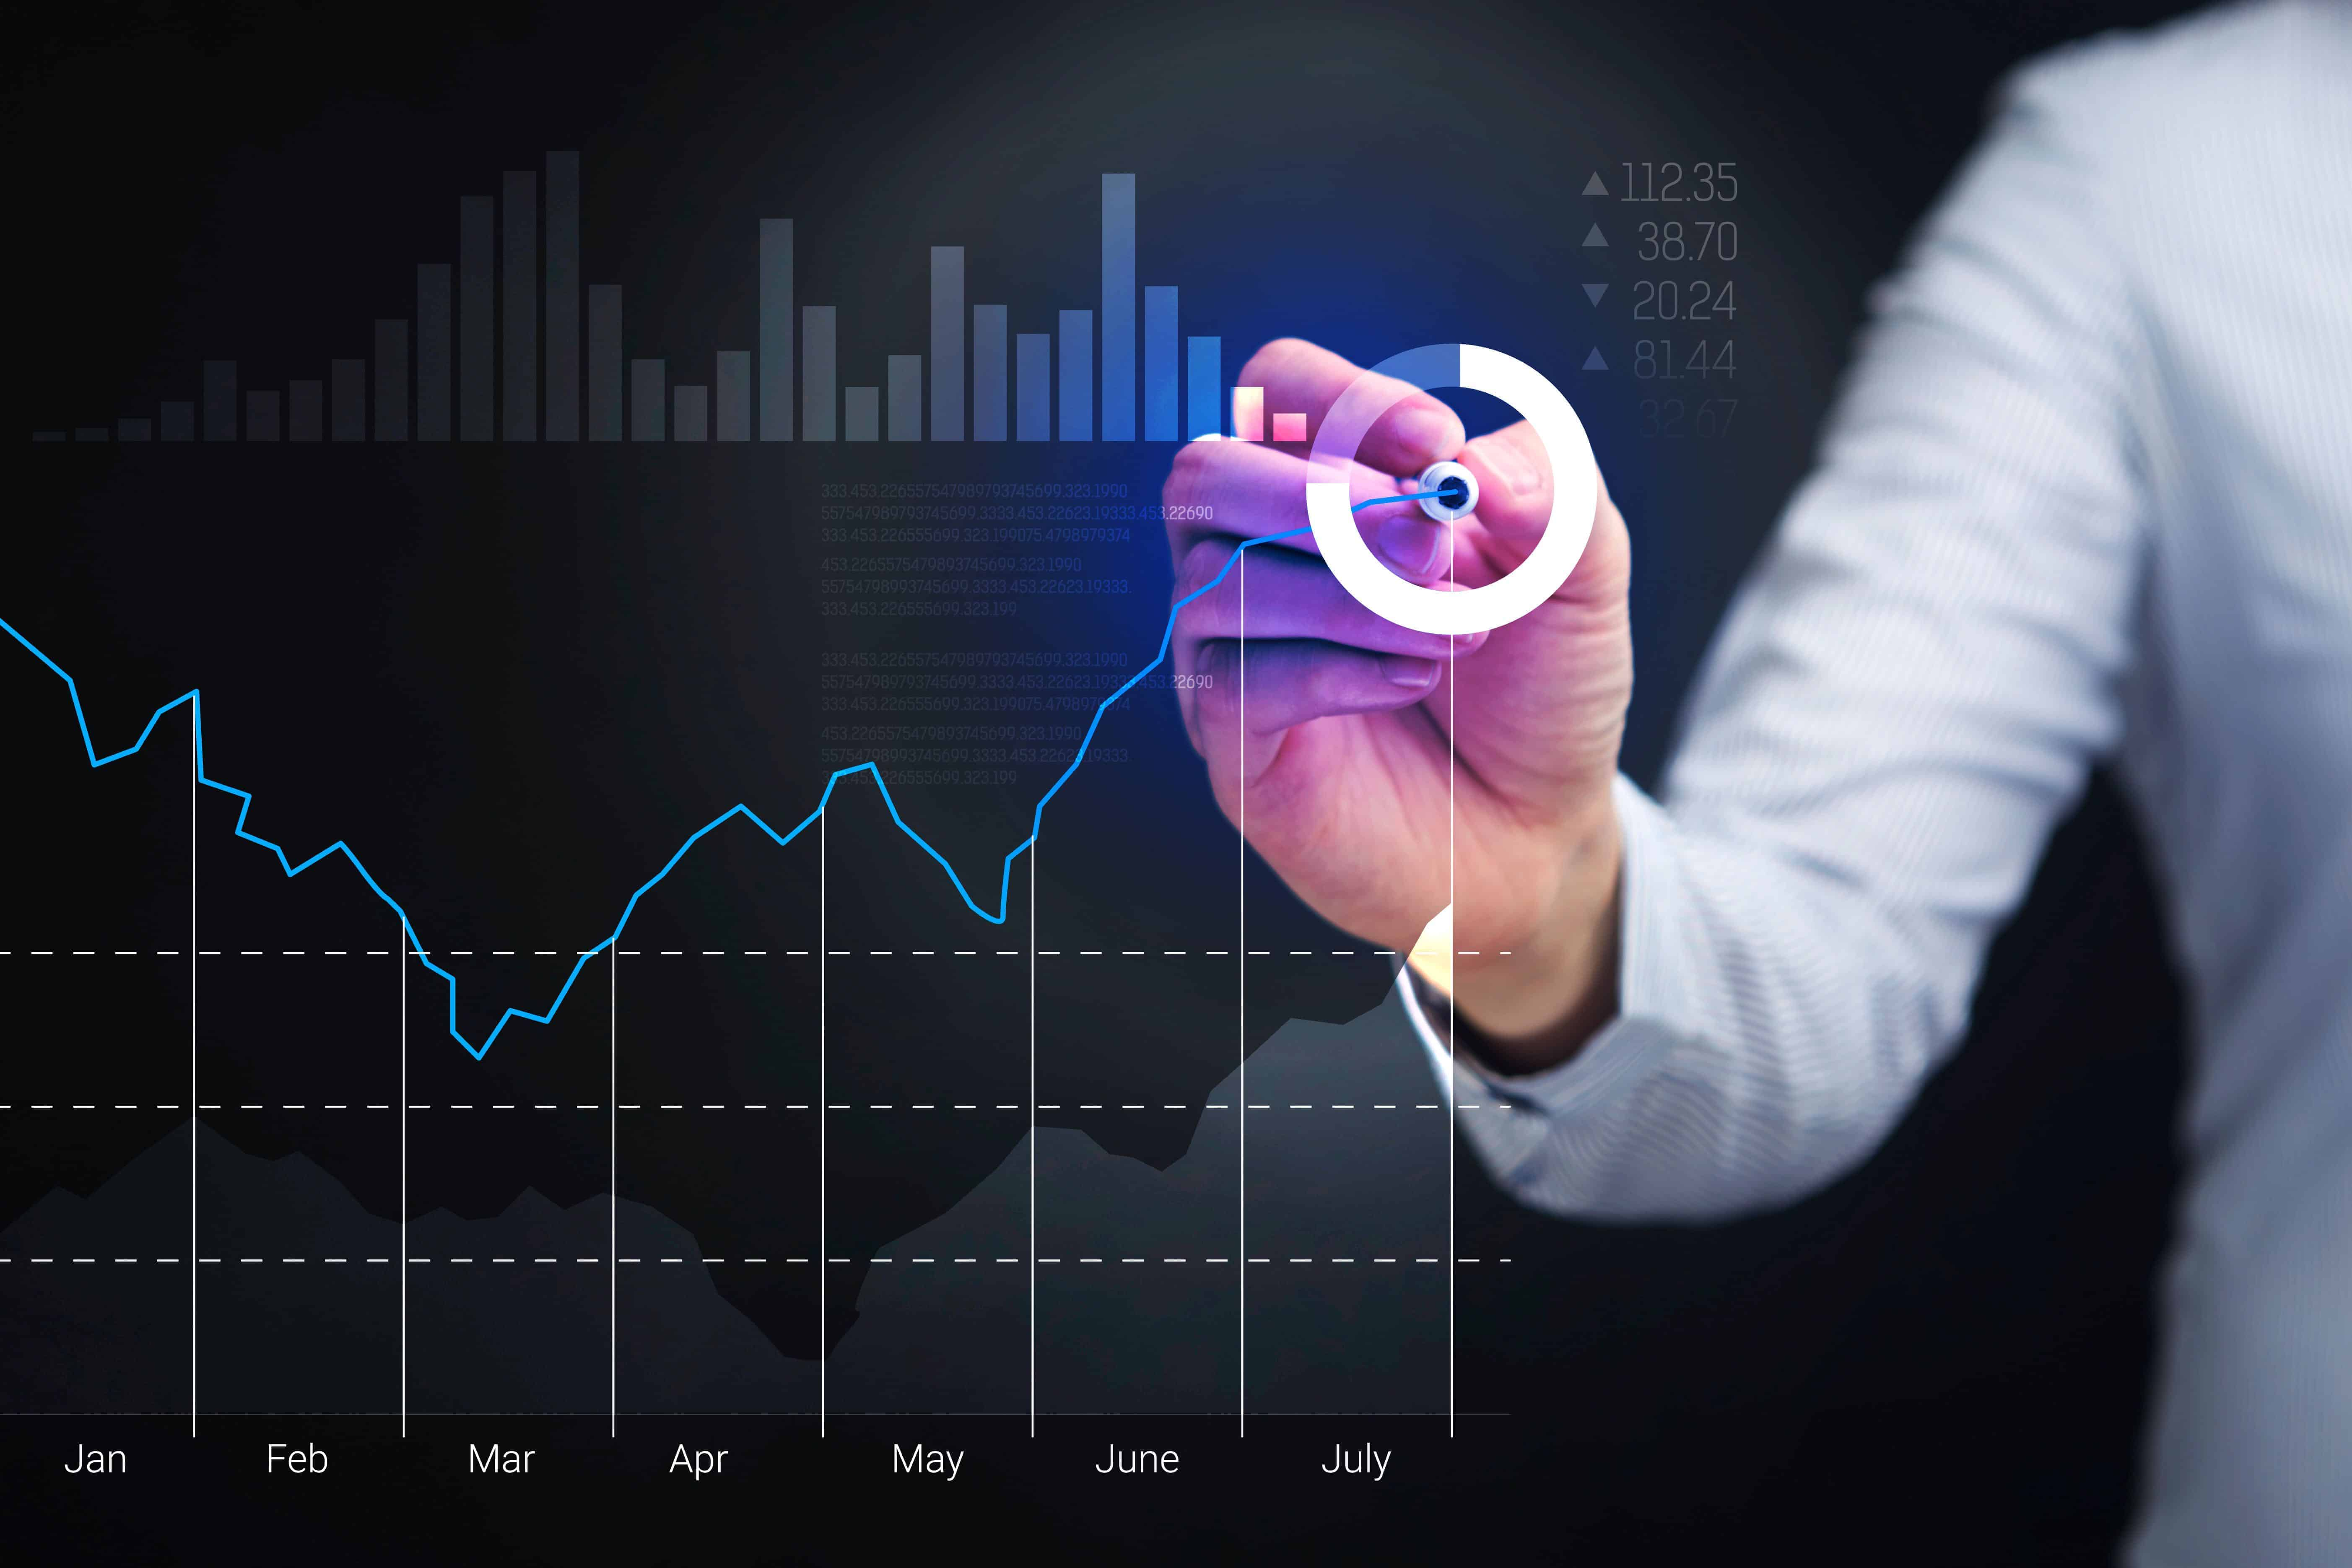 Analytics-as-a-Service: Turning data into profits for MVNOs